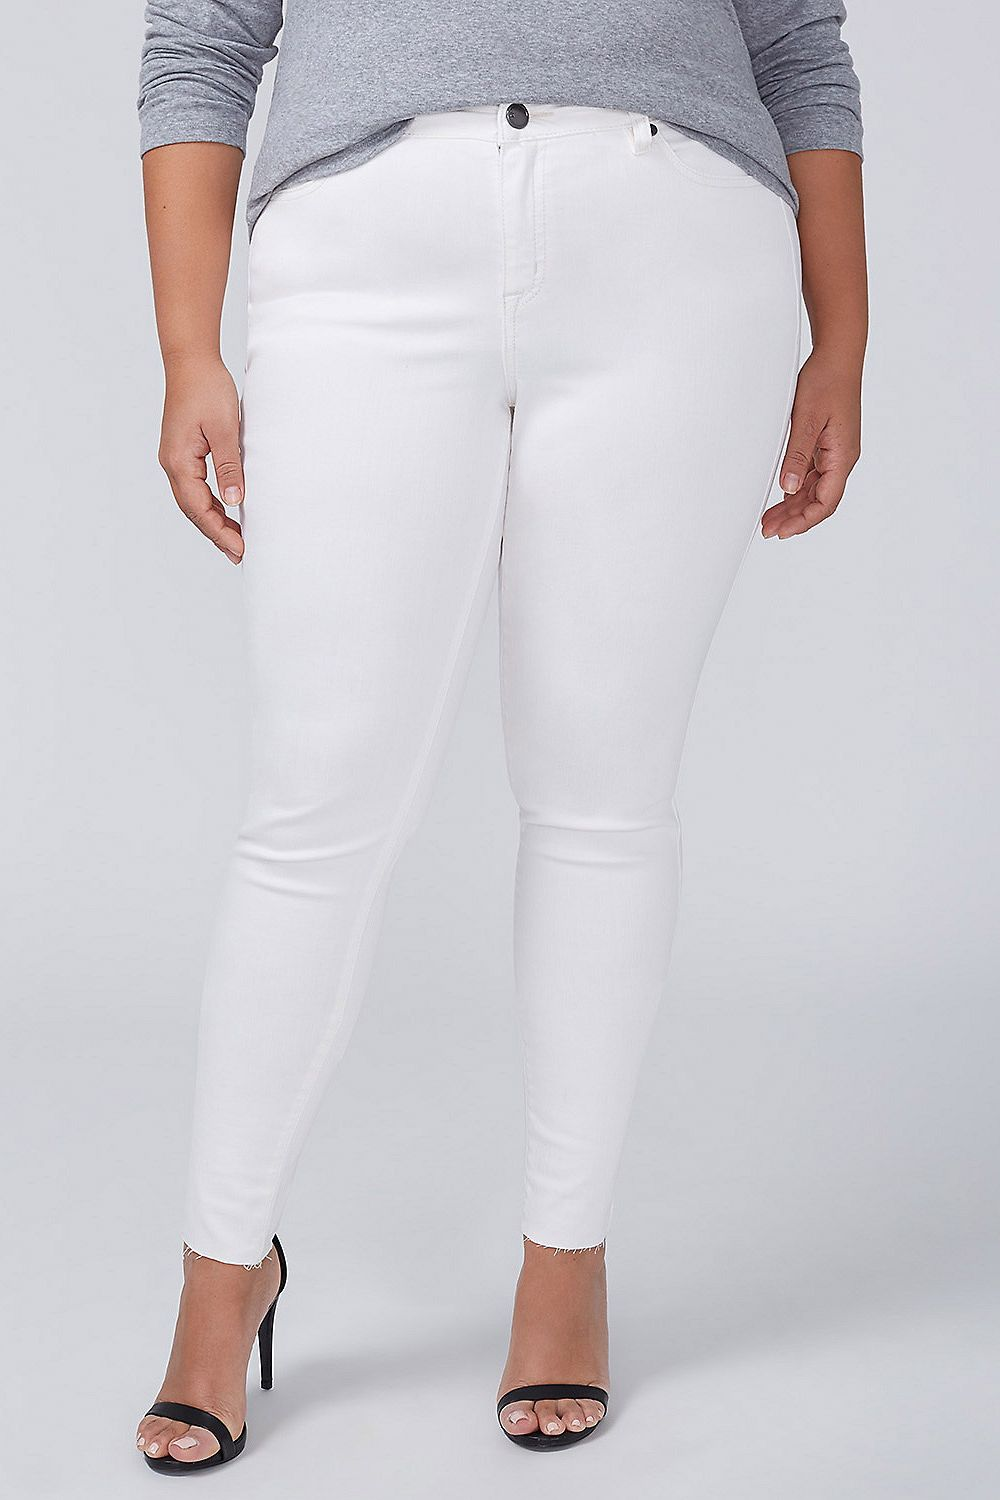 Lane Bryant Power Pockets Super Stretch Skinny White Ankle Jean